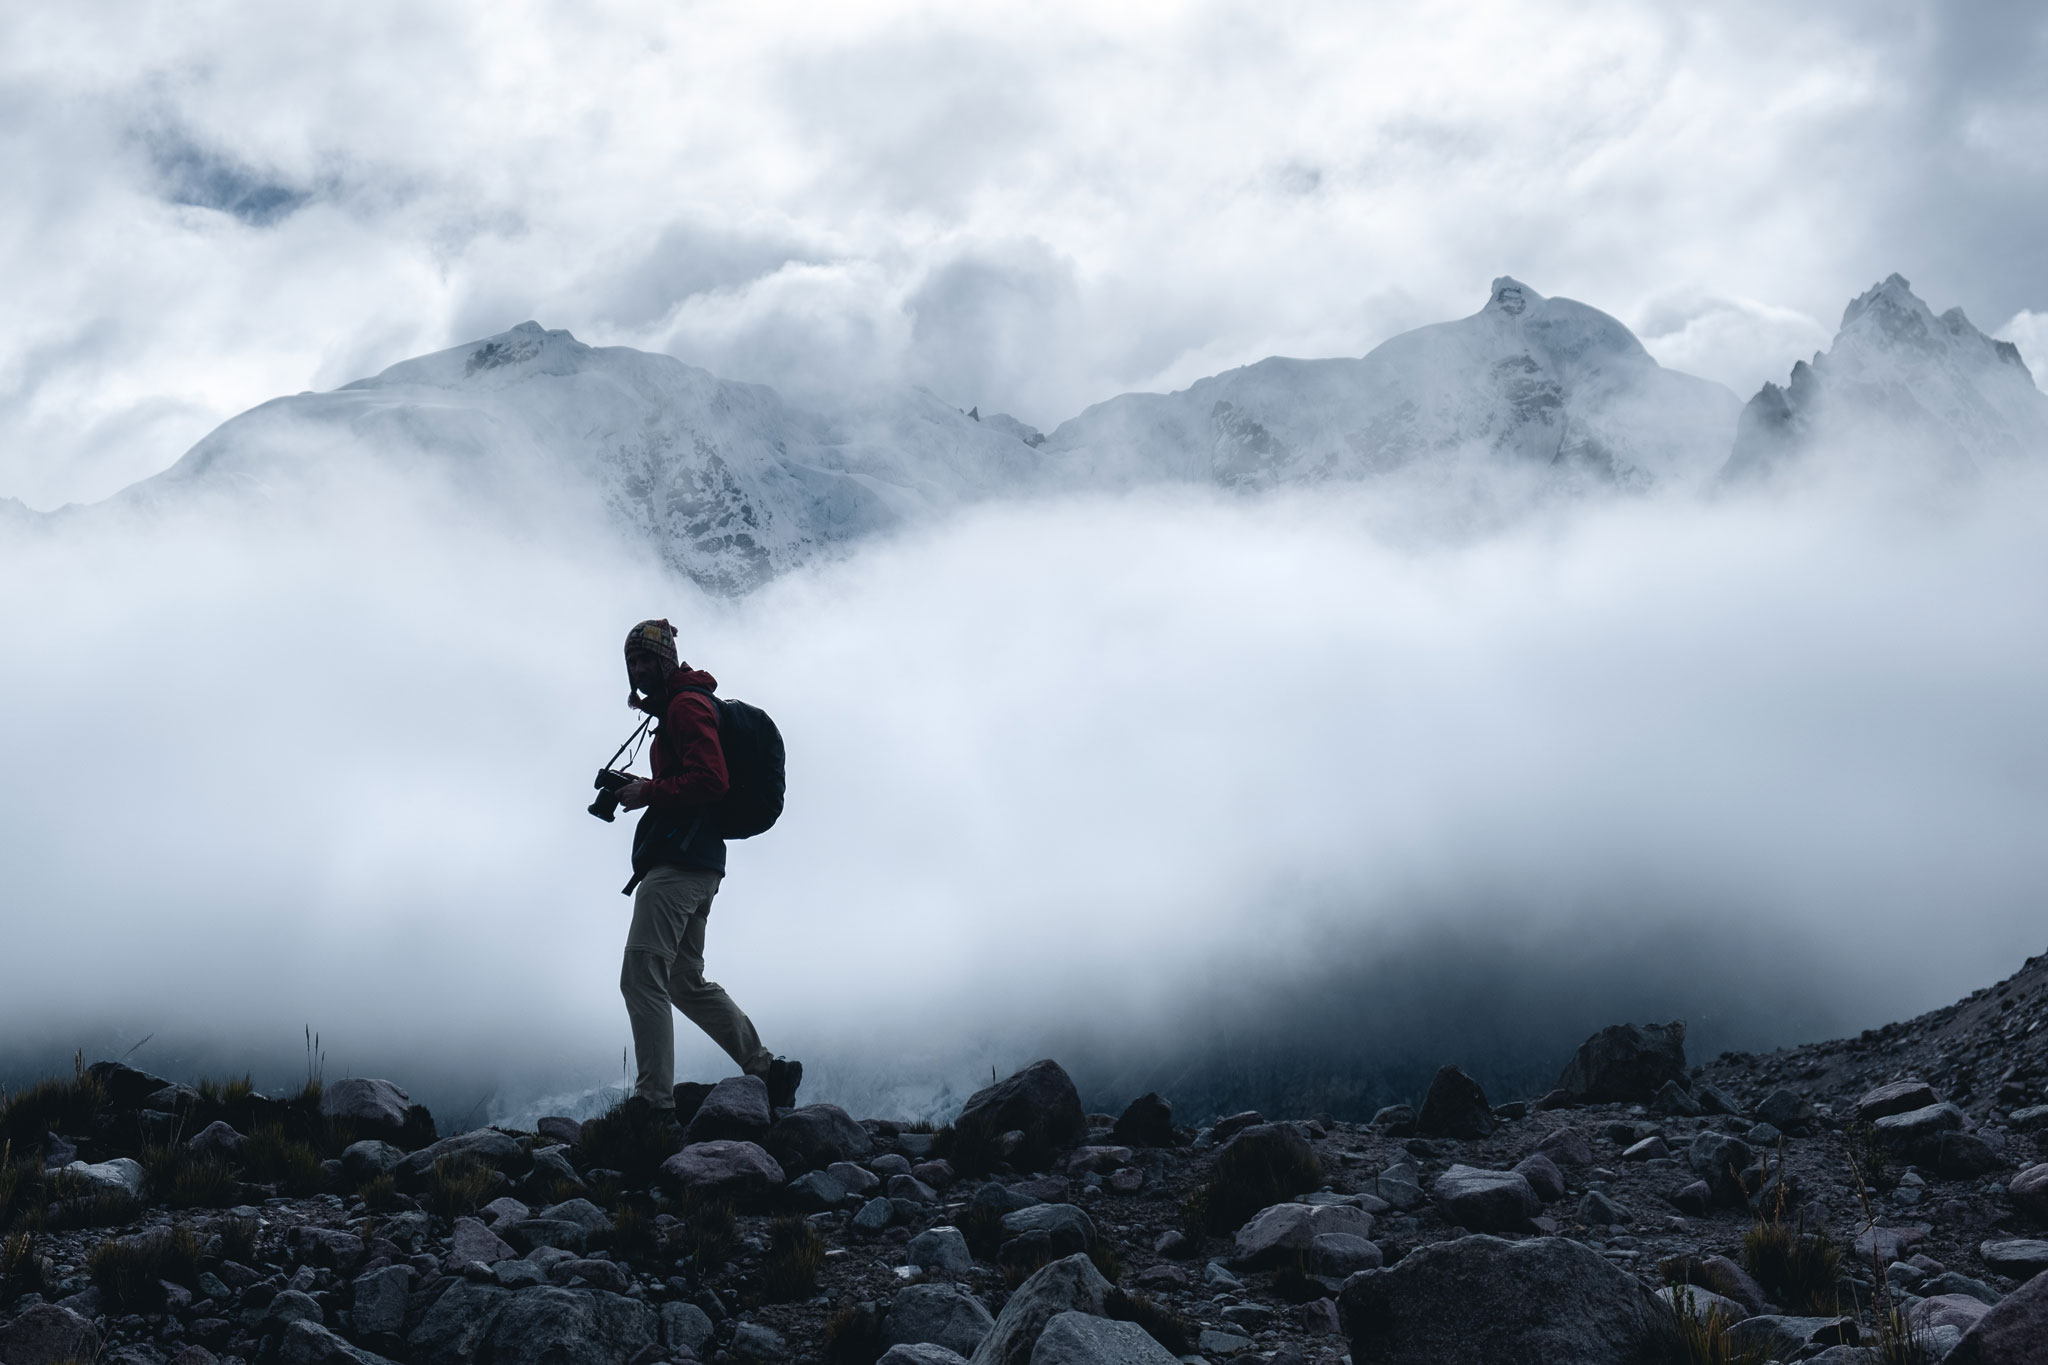 EXPLORING THE PERUVIAN ANDES